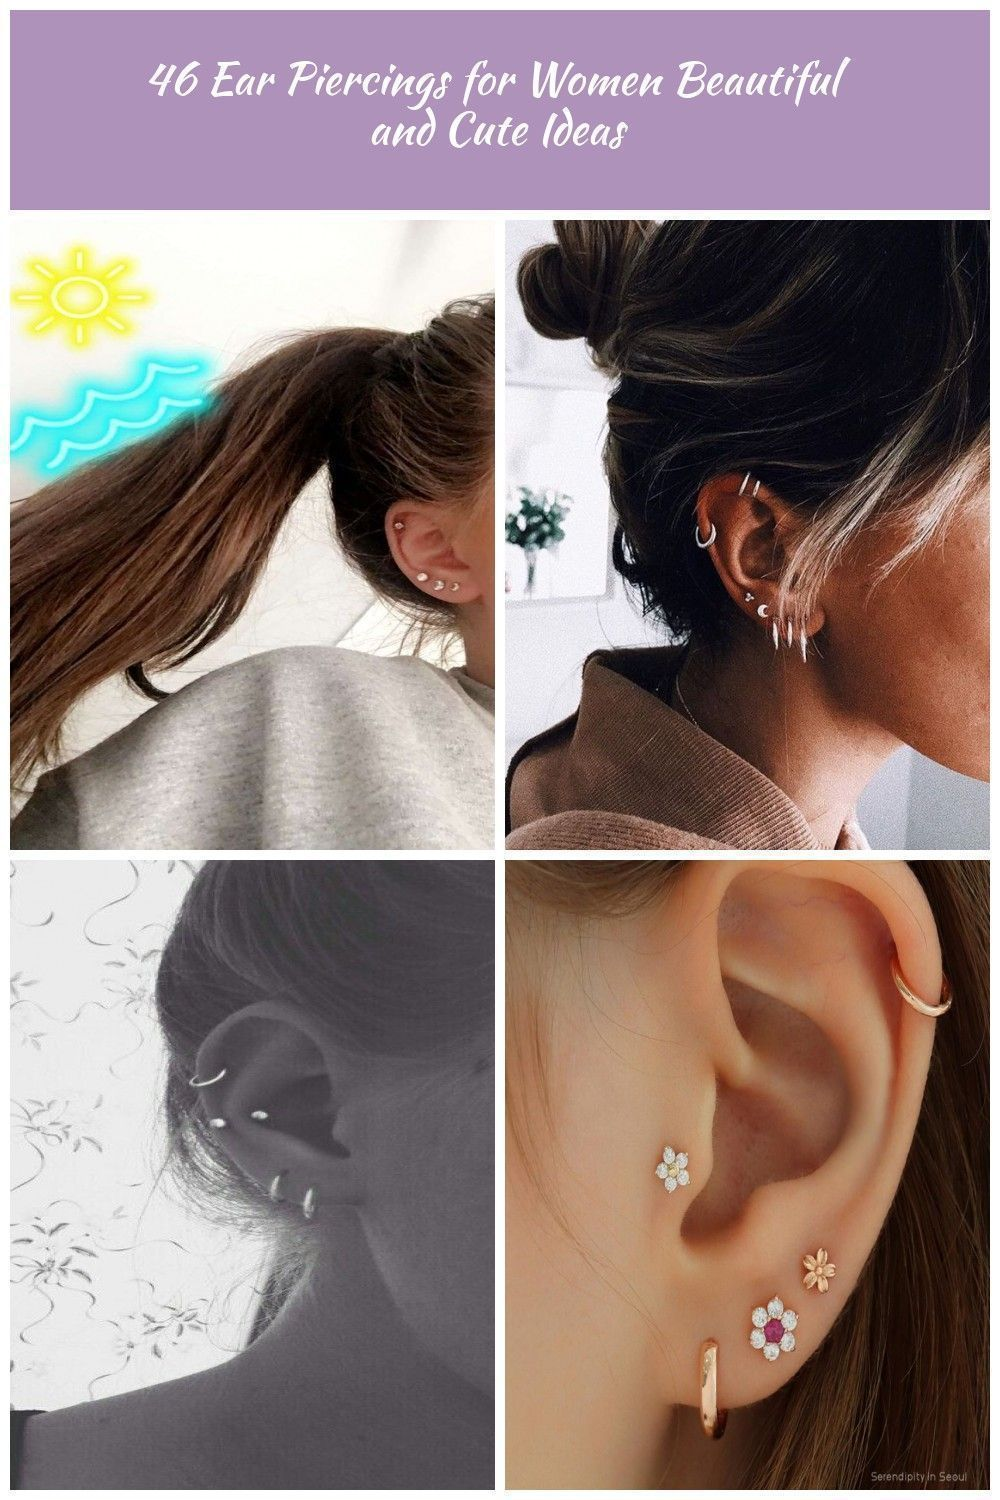 Latest ear piercings for women beautiful and cute ideas, piercings ear daith mig...  Latest ear piercings for women beautiful and cute ideas, piercings ear daith migraine relief, ear p #beautiful #cute #daith #Ear #Ideas #Latest #mig #Piercings #Women #secondearpiercing